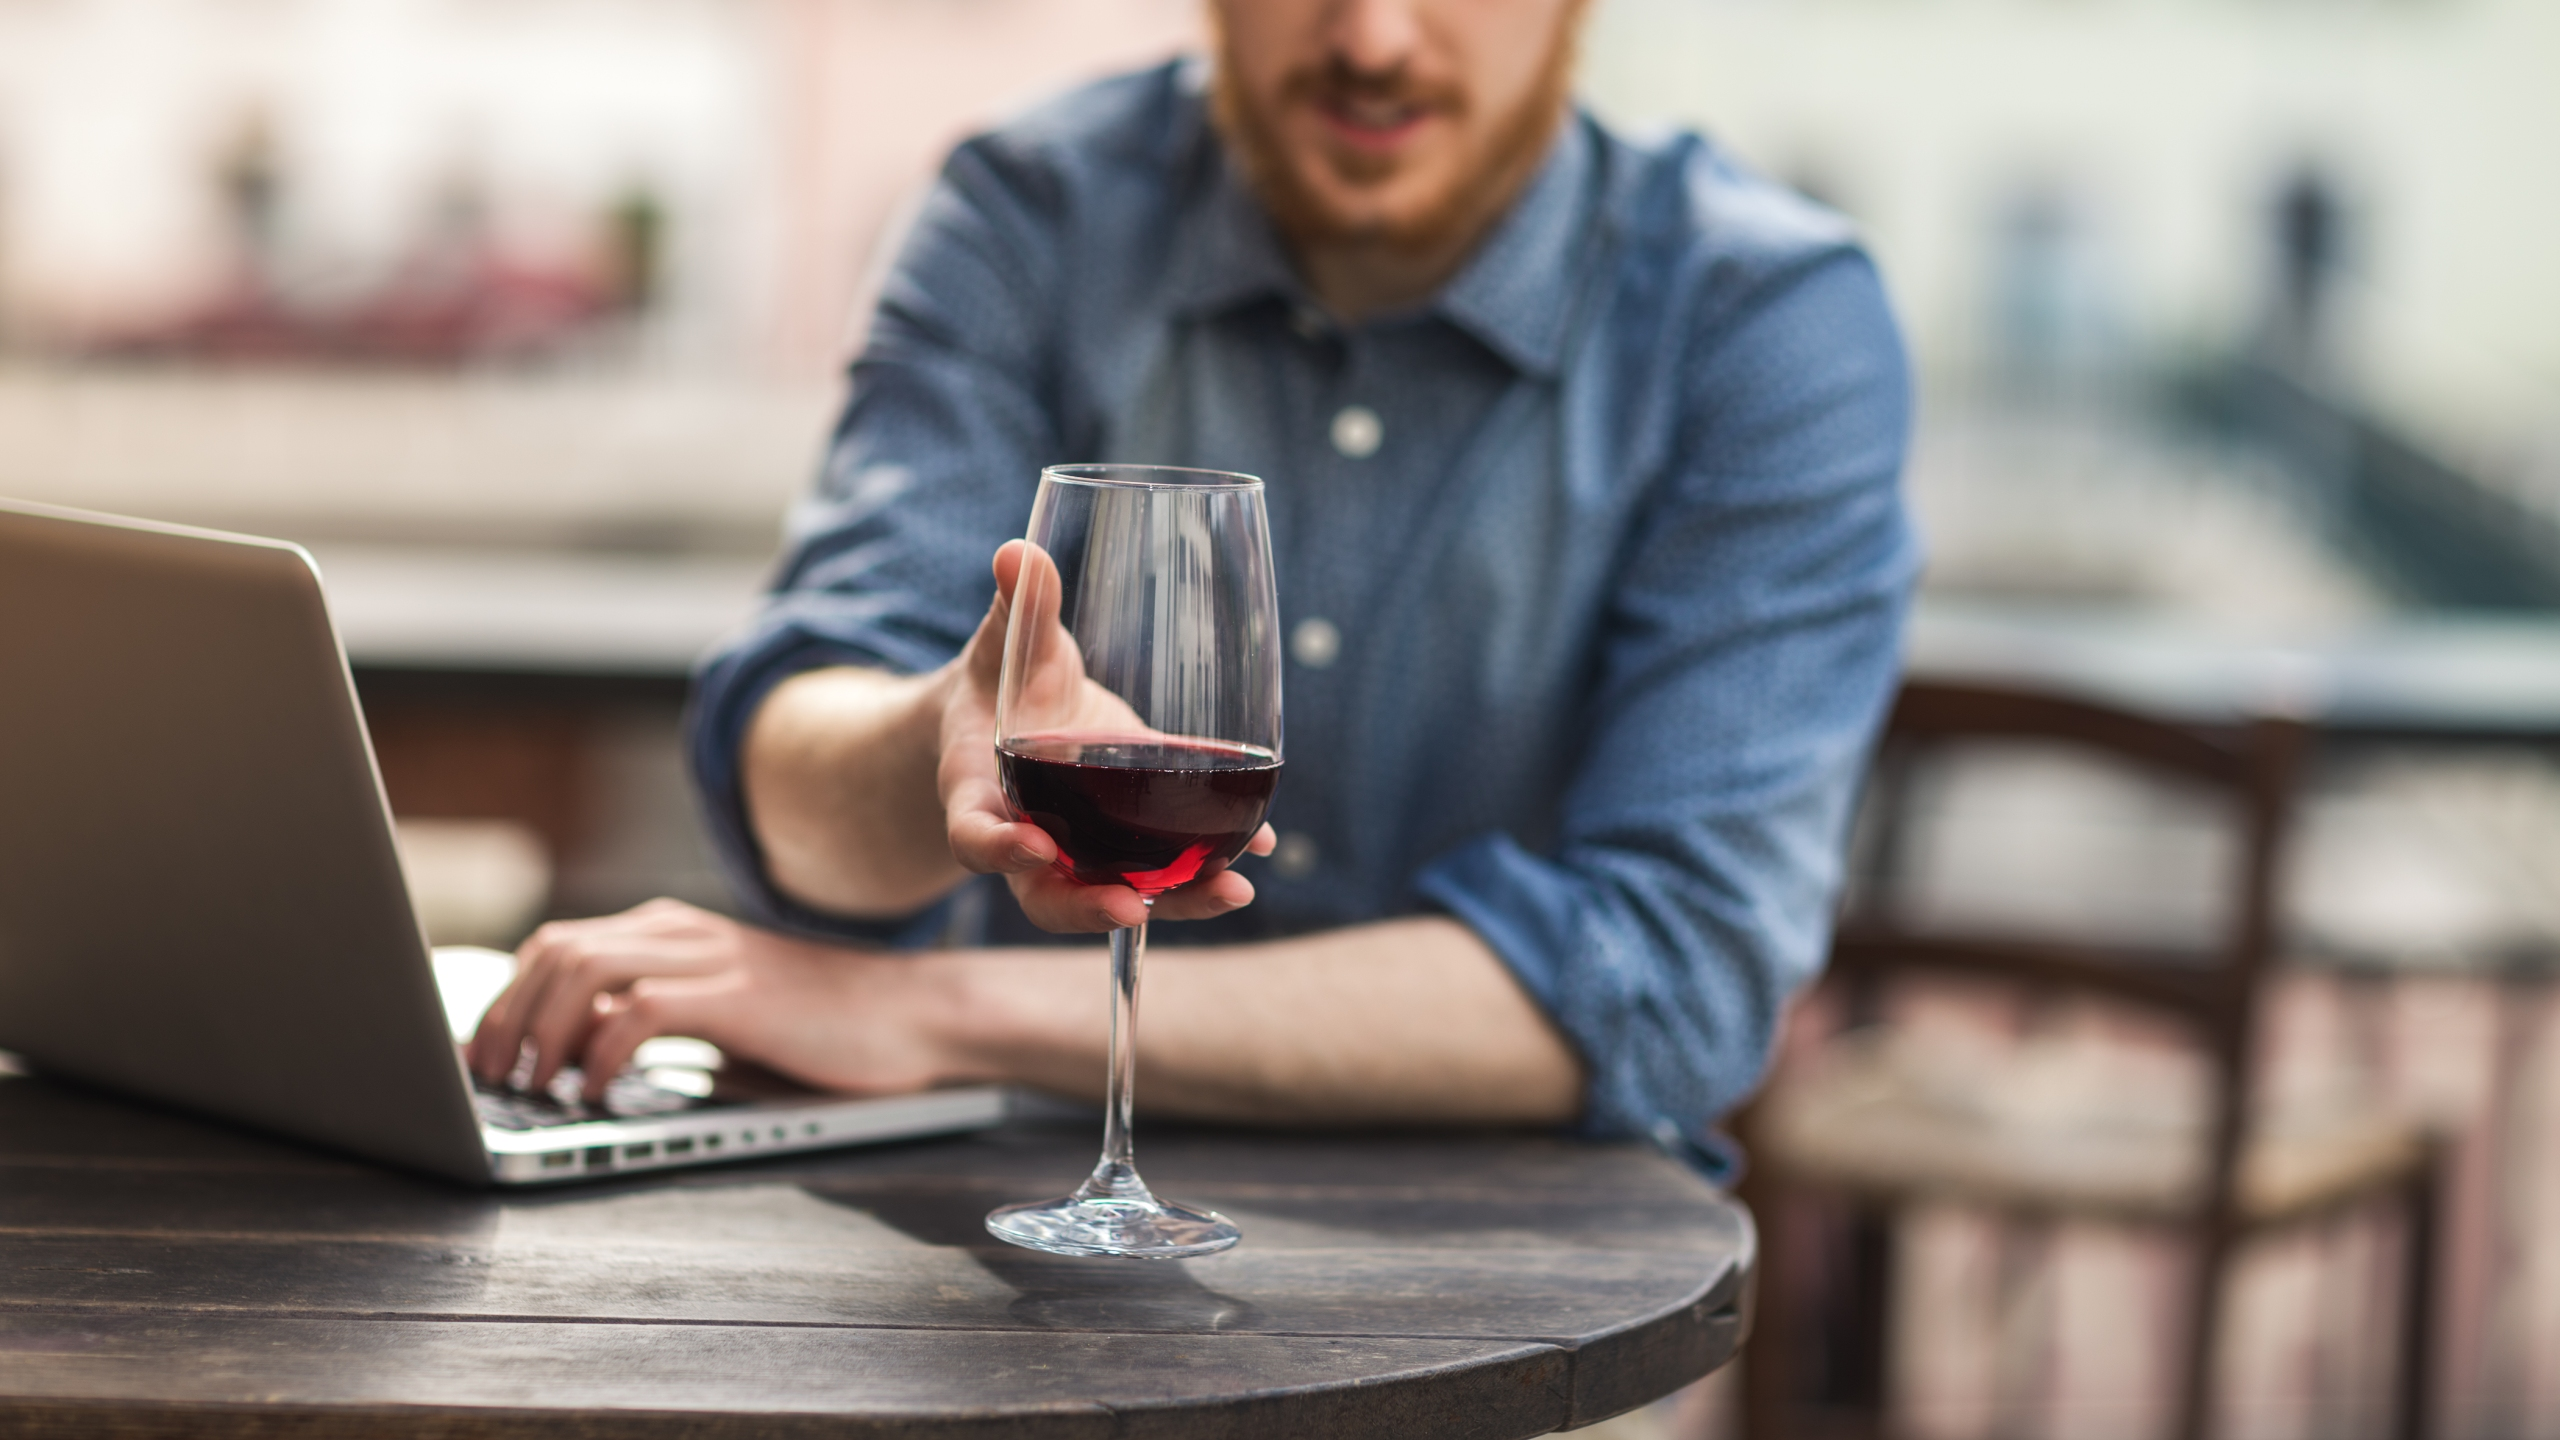 A man reaches for a glass of wine as he uses his laptop in this undated file photo. (Getty Images)